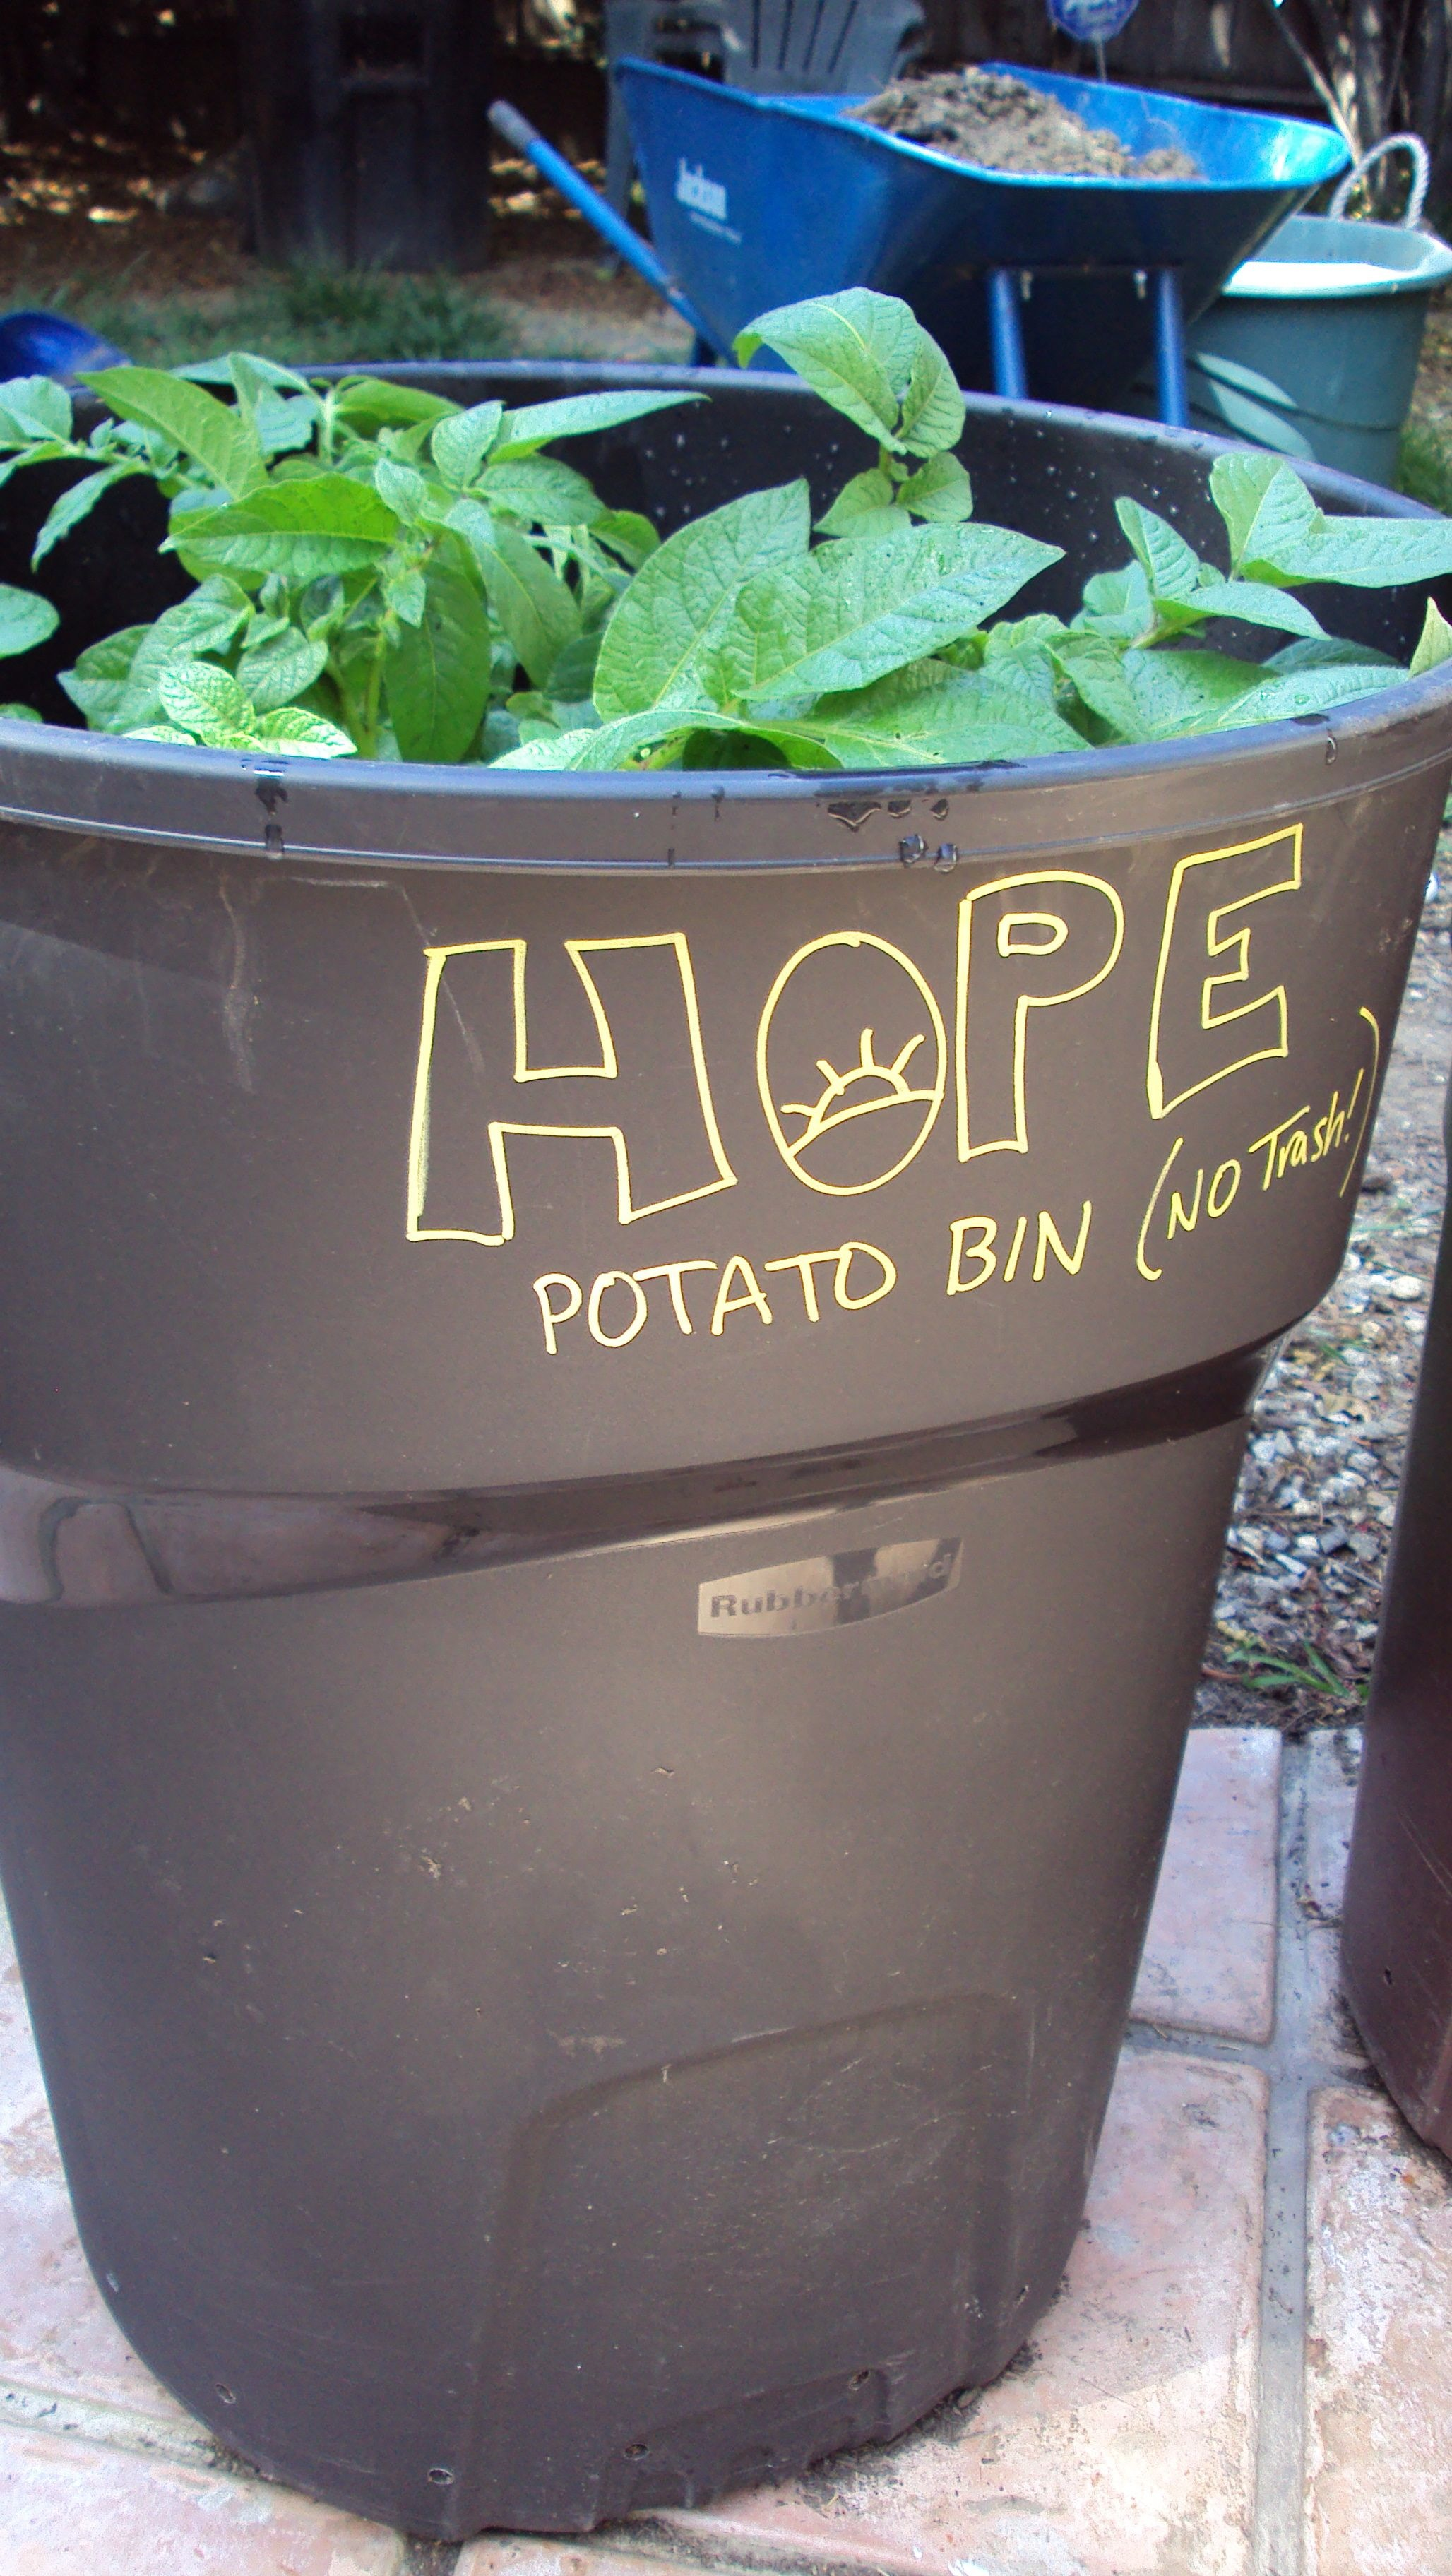 Creative Potato Planting Main Reason Weare Growing M This Is Most Important Part A Trash Potatoes Cannot Be Exposed To Sunwhile Y How To Grow Potatoes A Trash Can Hope Gardens houzz-02 Growing Potatoes Indoors